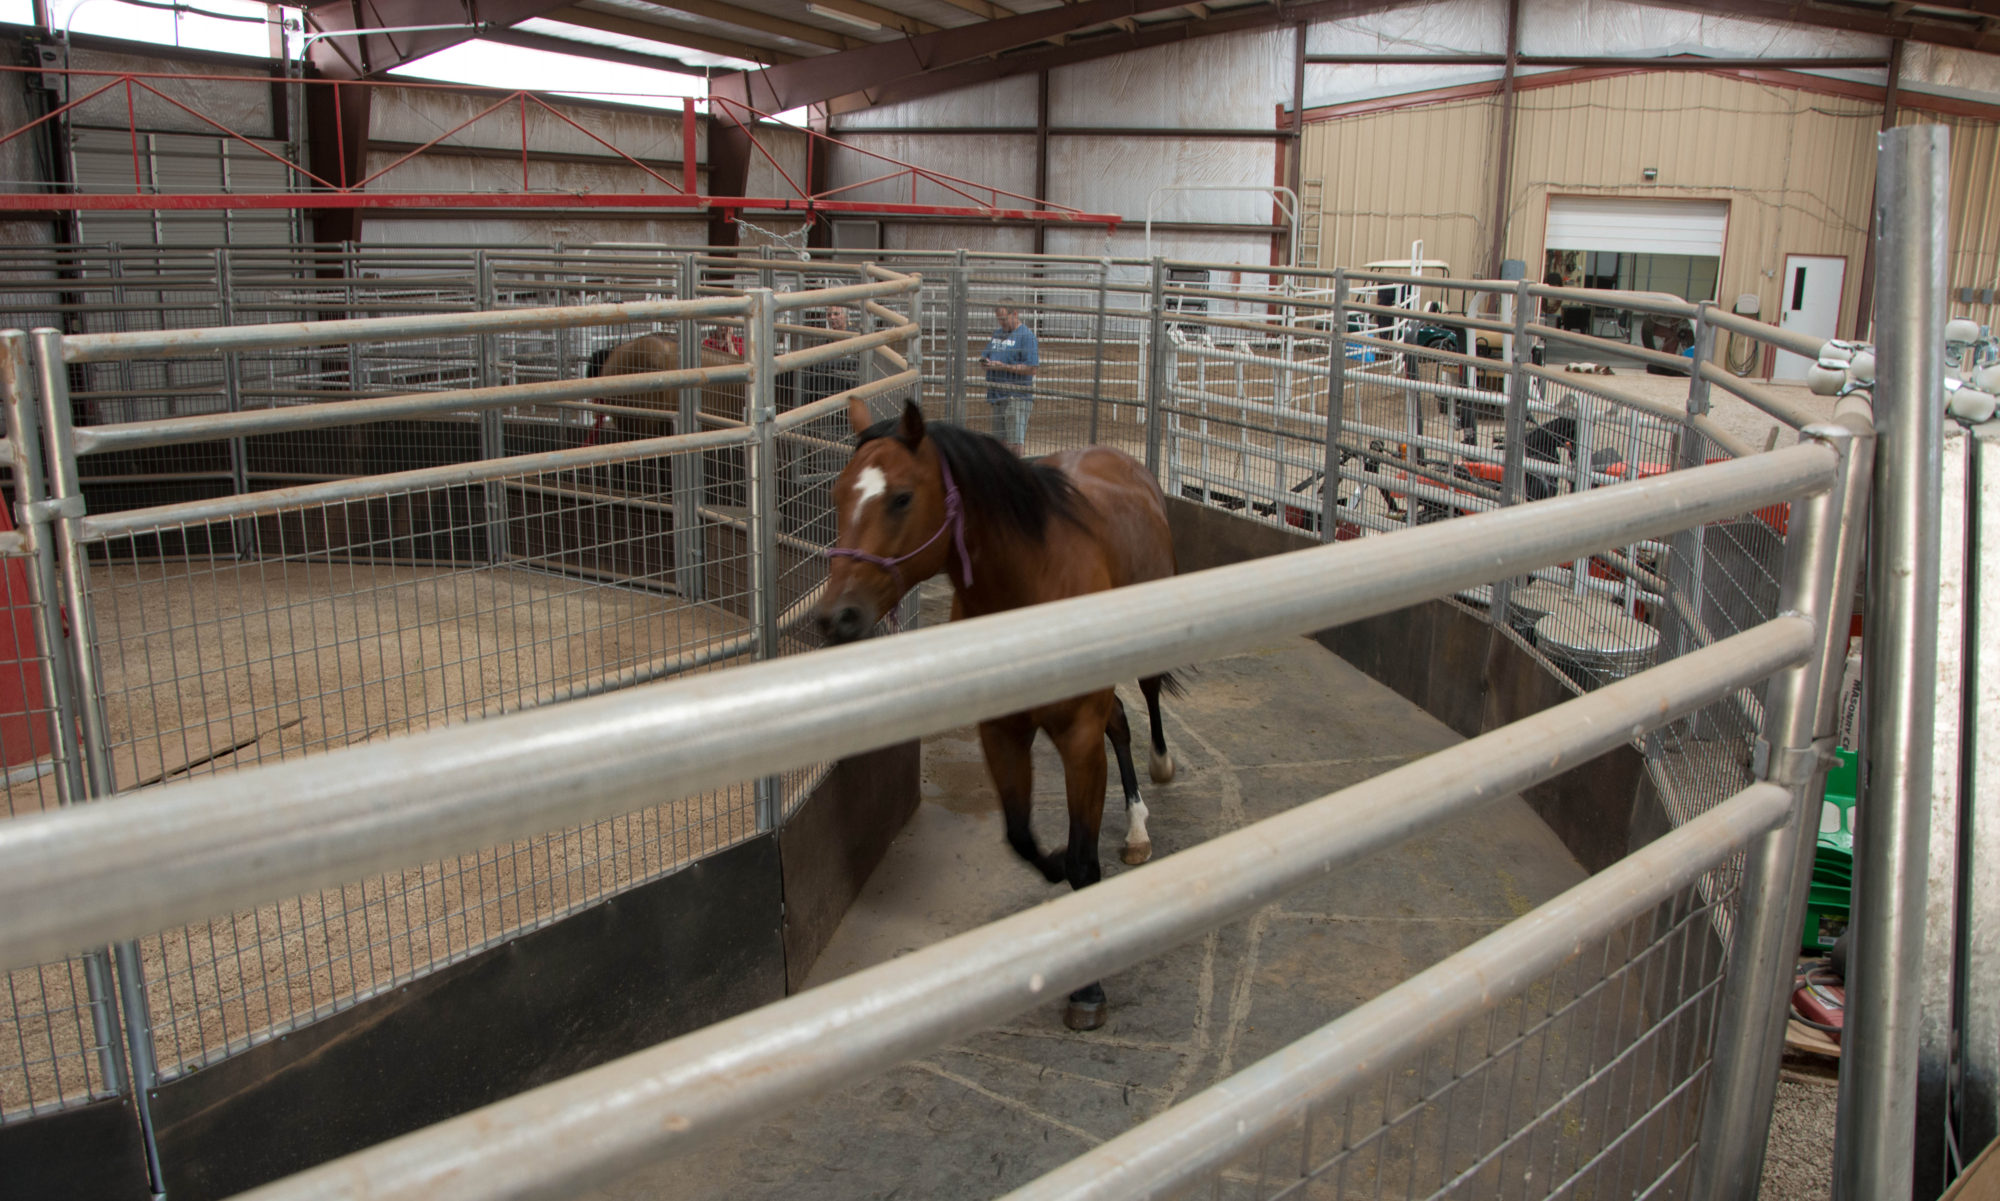 Bar L Equine Conditioning Center, LLC